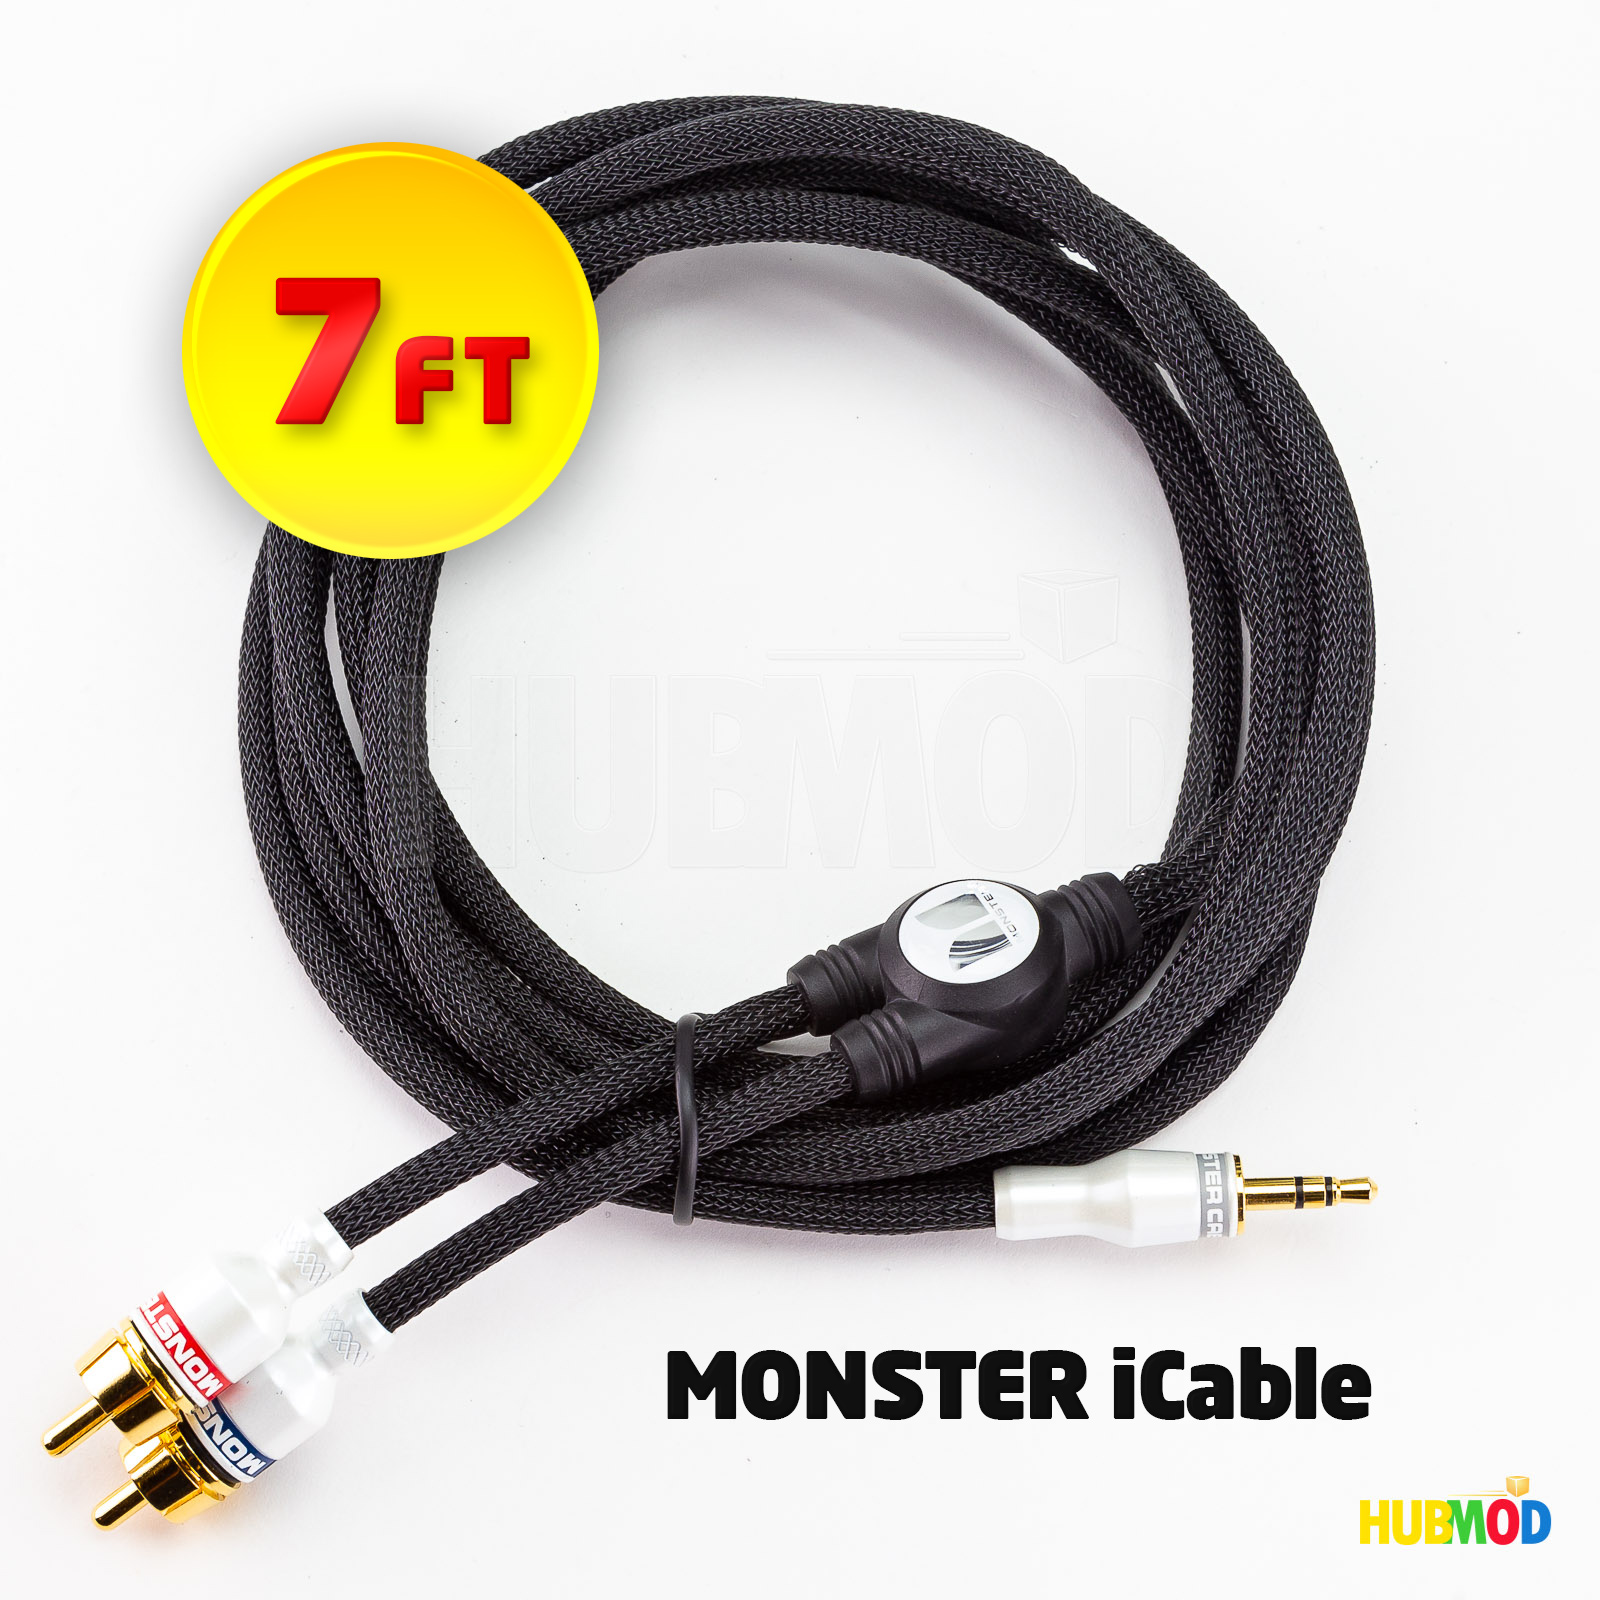 pick up 33226 d3e37 Details about MONSTER iCable 7' Ft Cable 3.5mm Audio Mini to RCA Stereo for  iPod iPhone Mac